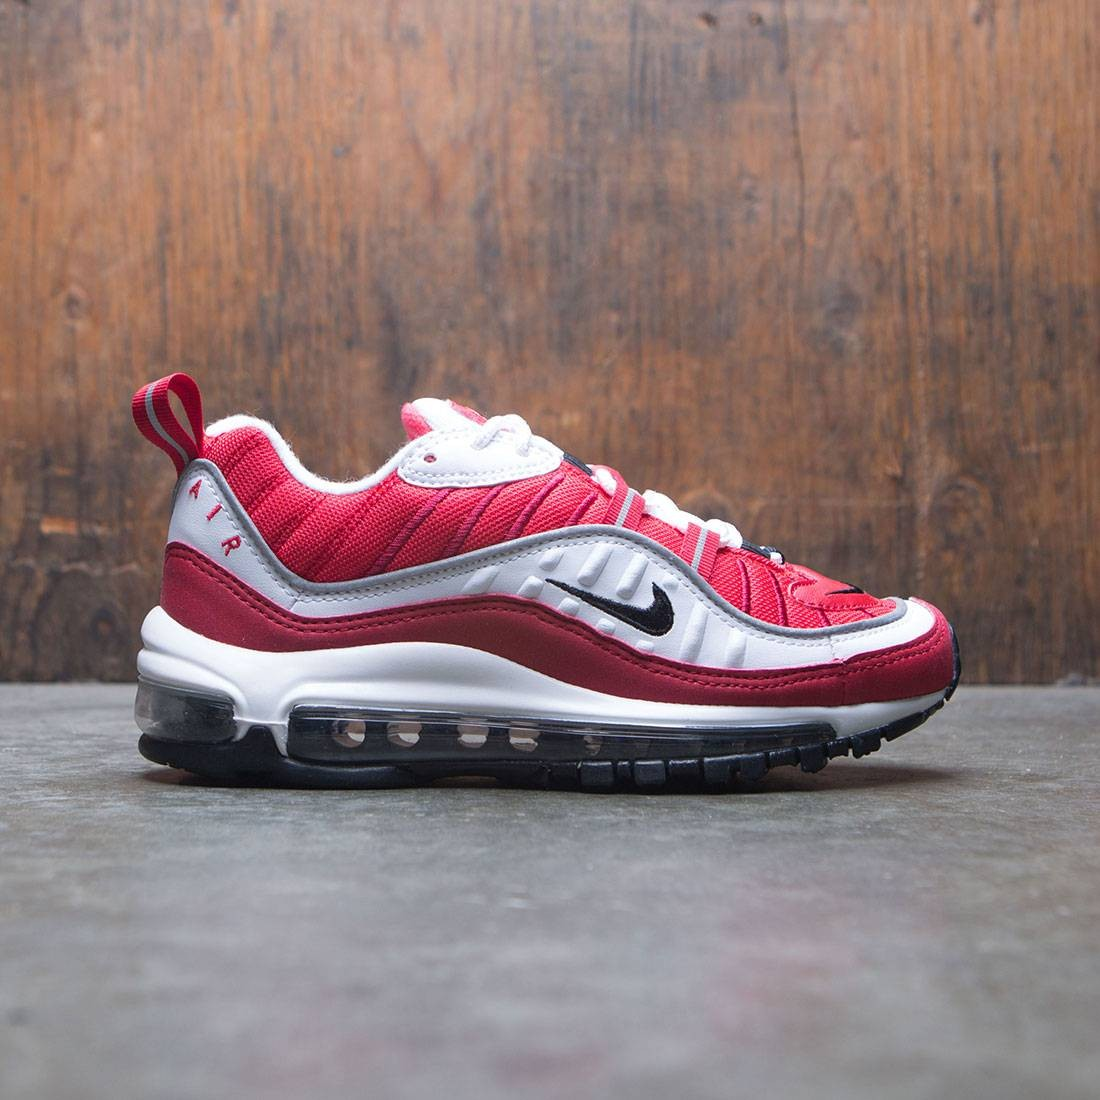 nike women air max 98 white black gym red reflect silver 4c8dc7d49